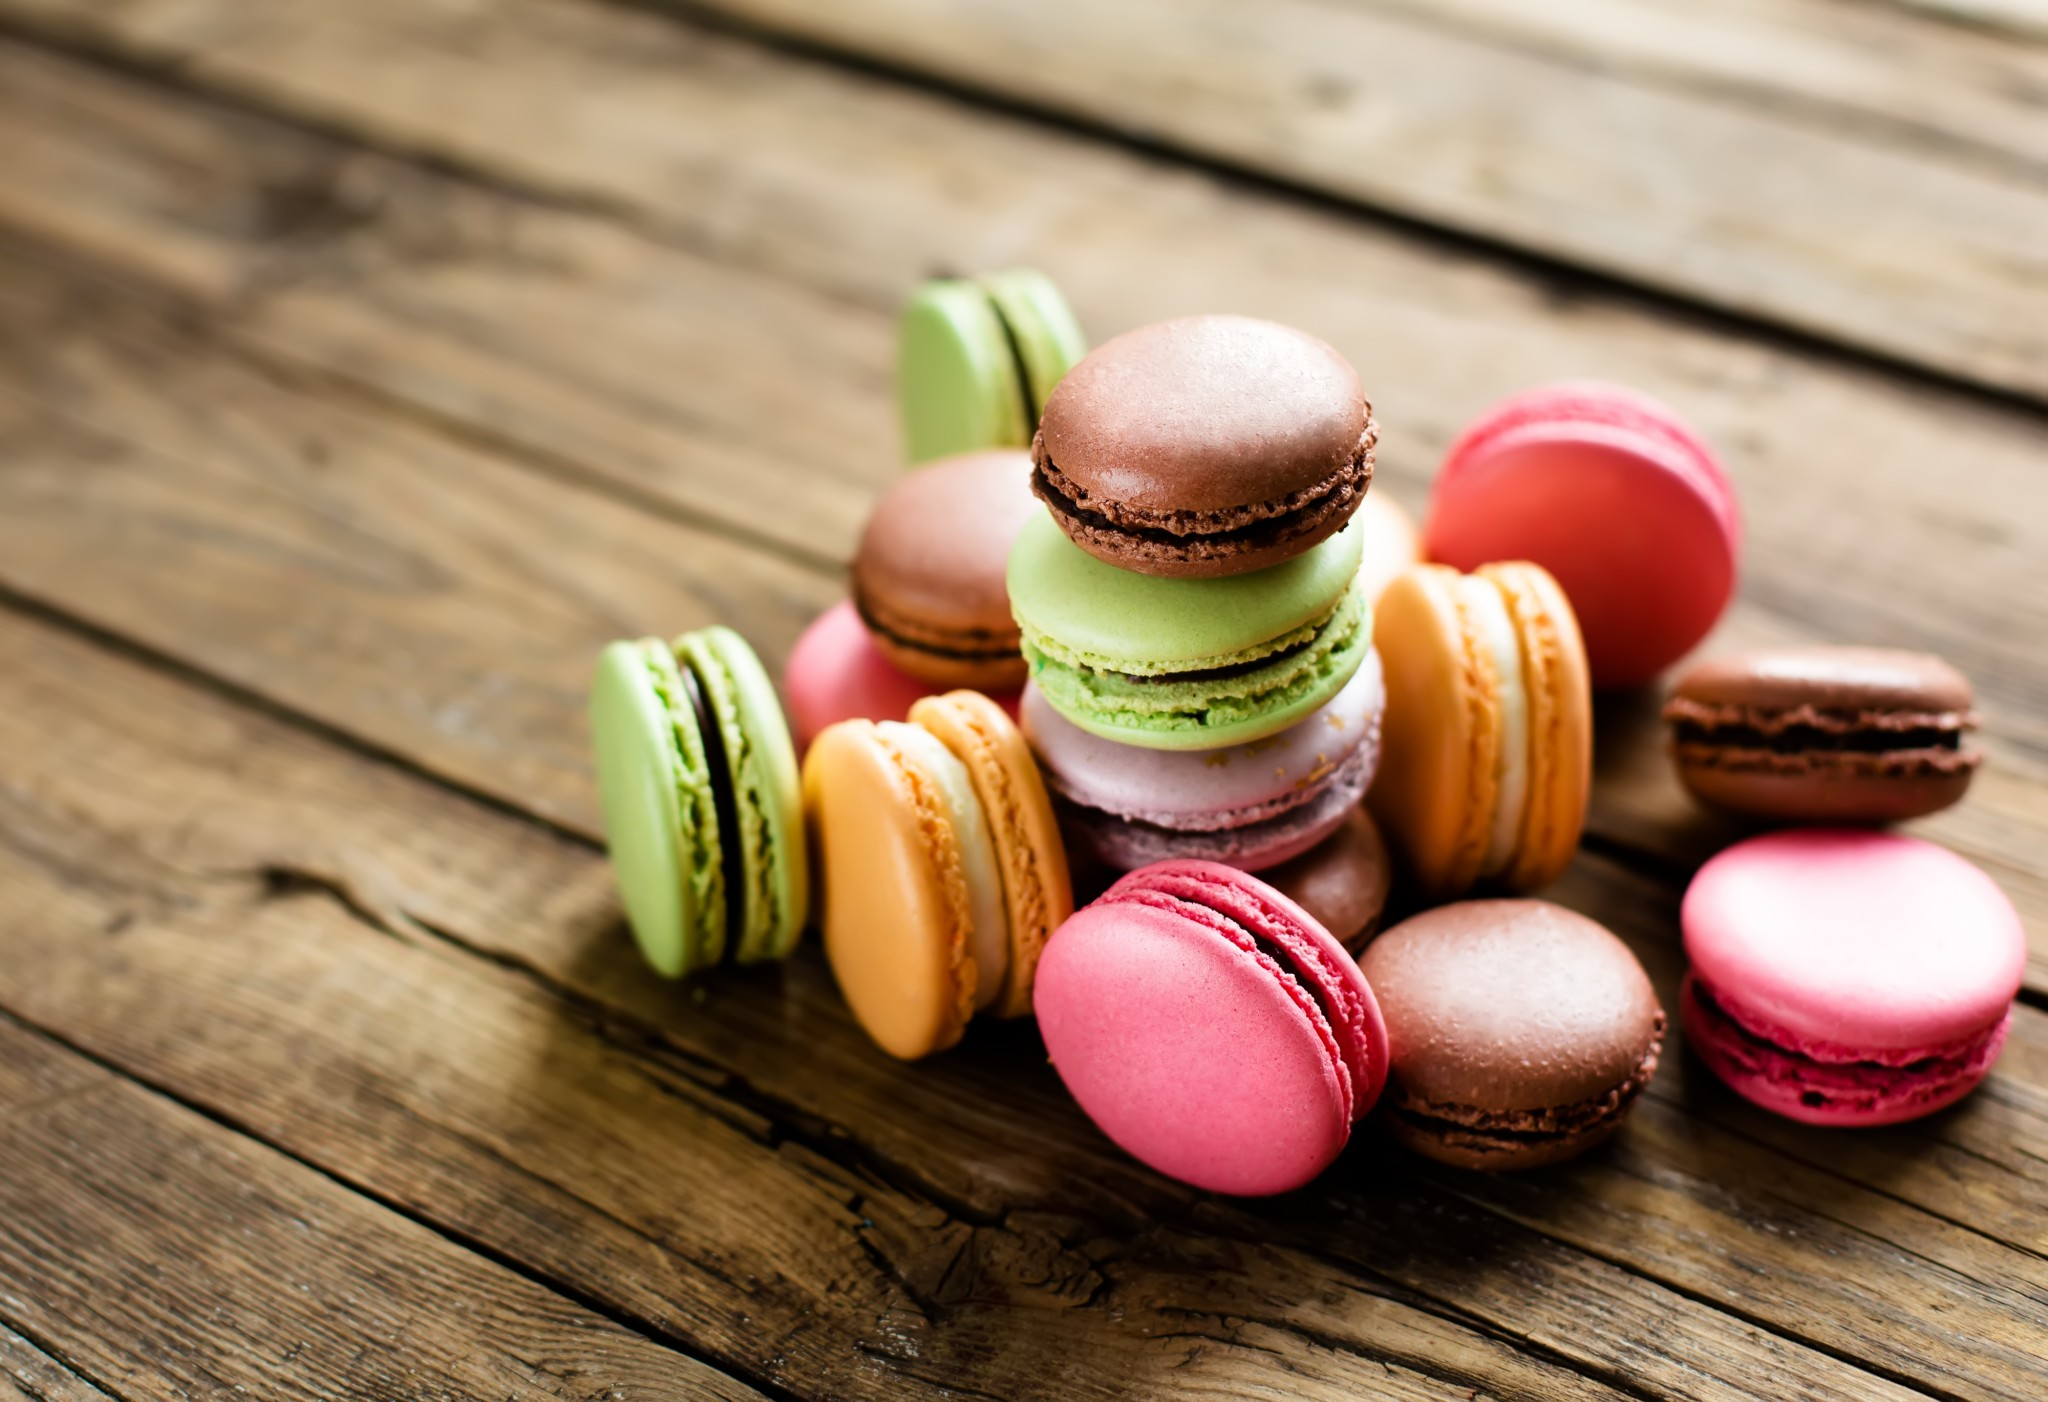 Macaron HD wallpapers, Desktop wallpaper - most viewed